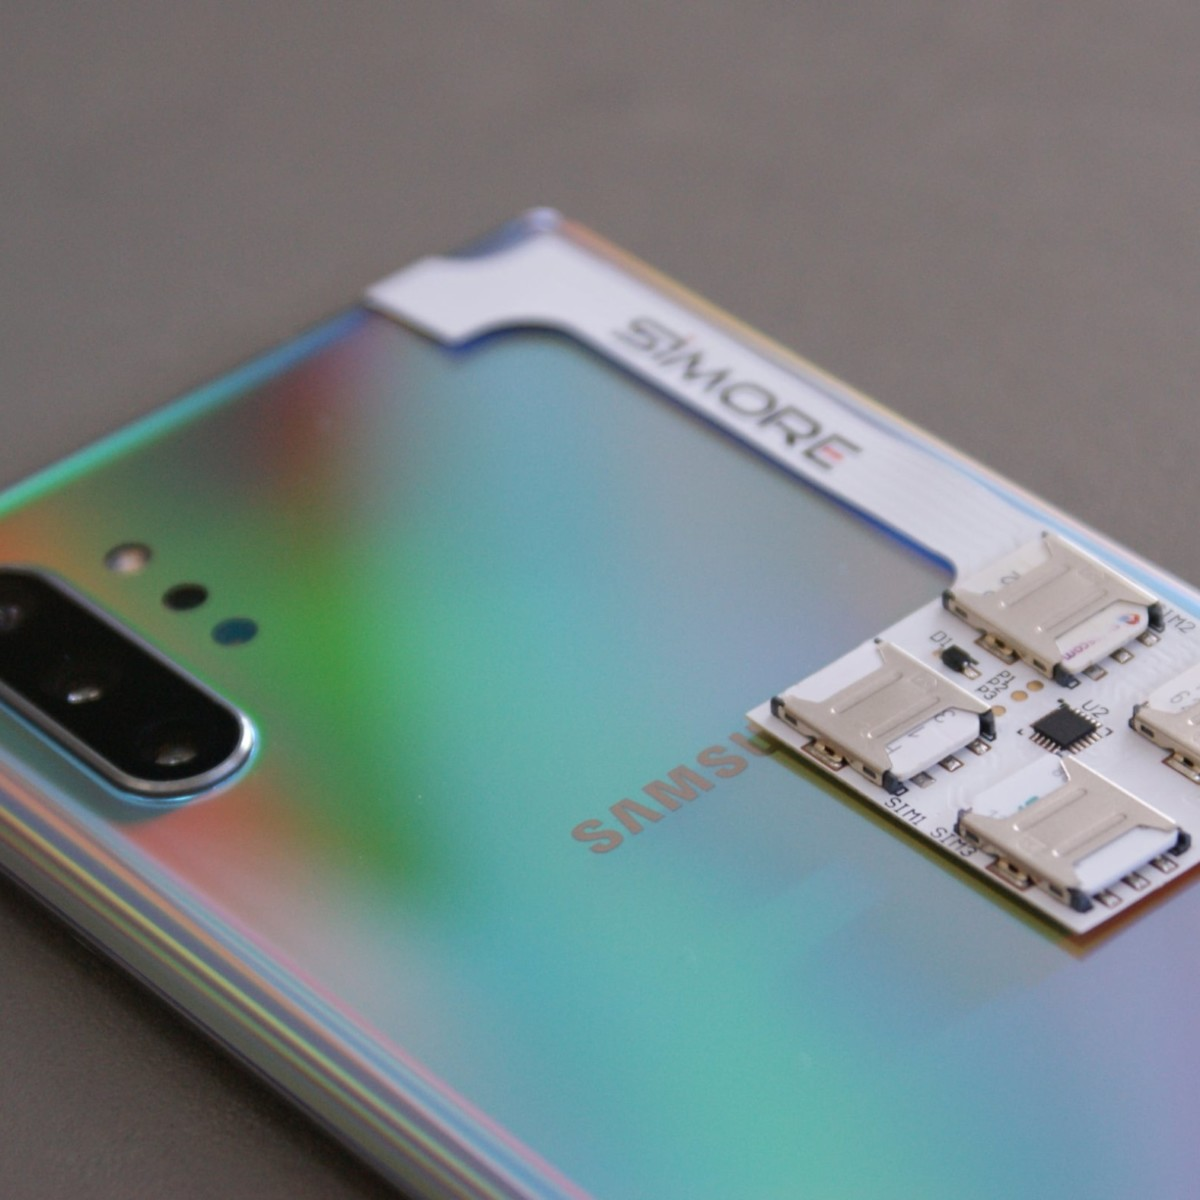 SIMore Speed ZX-Four Samsung Galaxy Multi-SIM Adapter lets you use up to five SIM cards in one smartphone